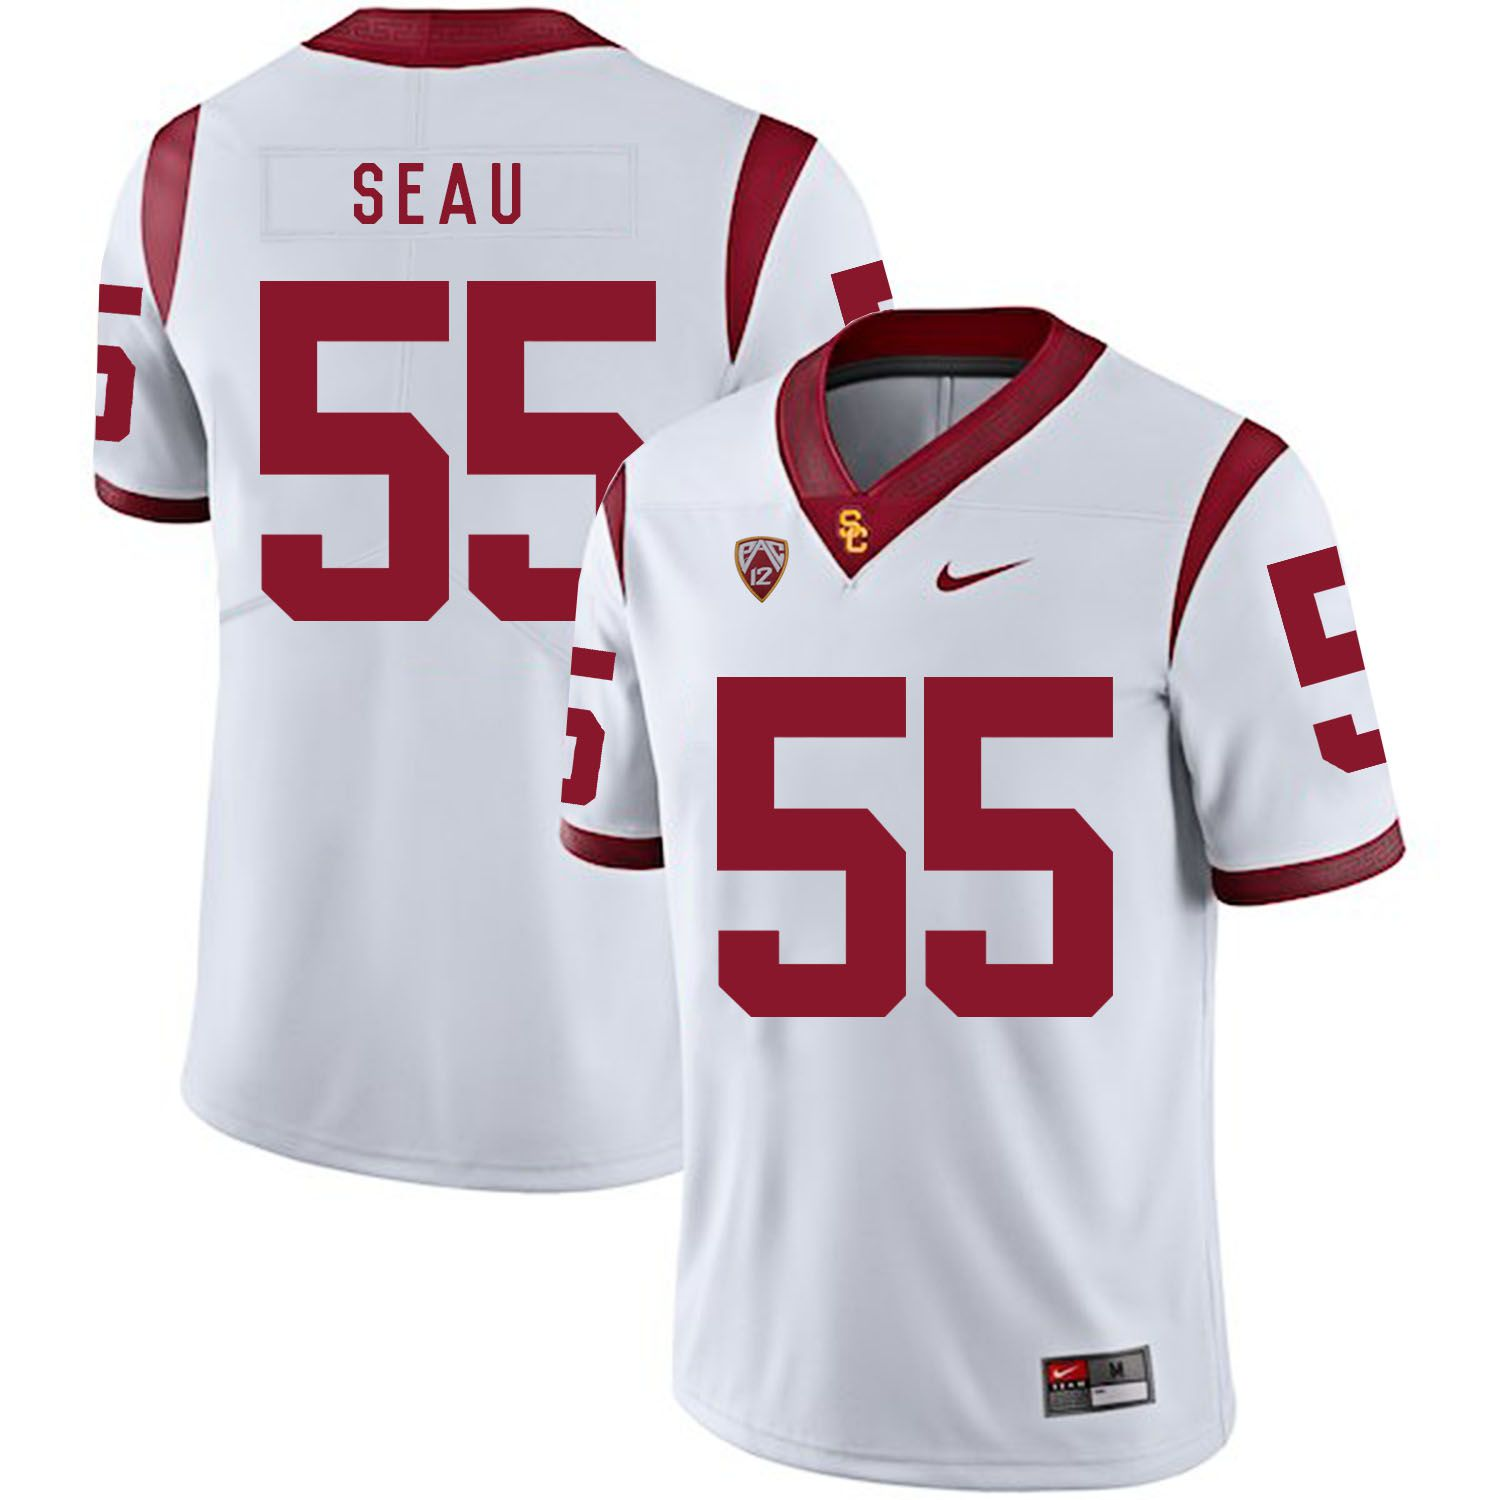 Men USC Trojans 55 Seau White Customized NCAA Jerseys